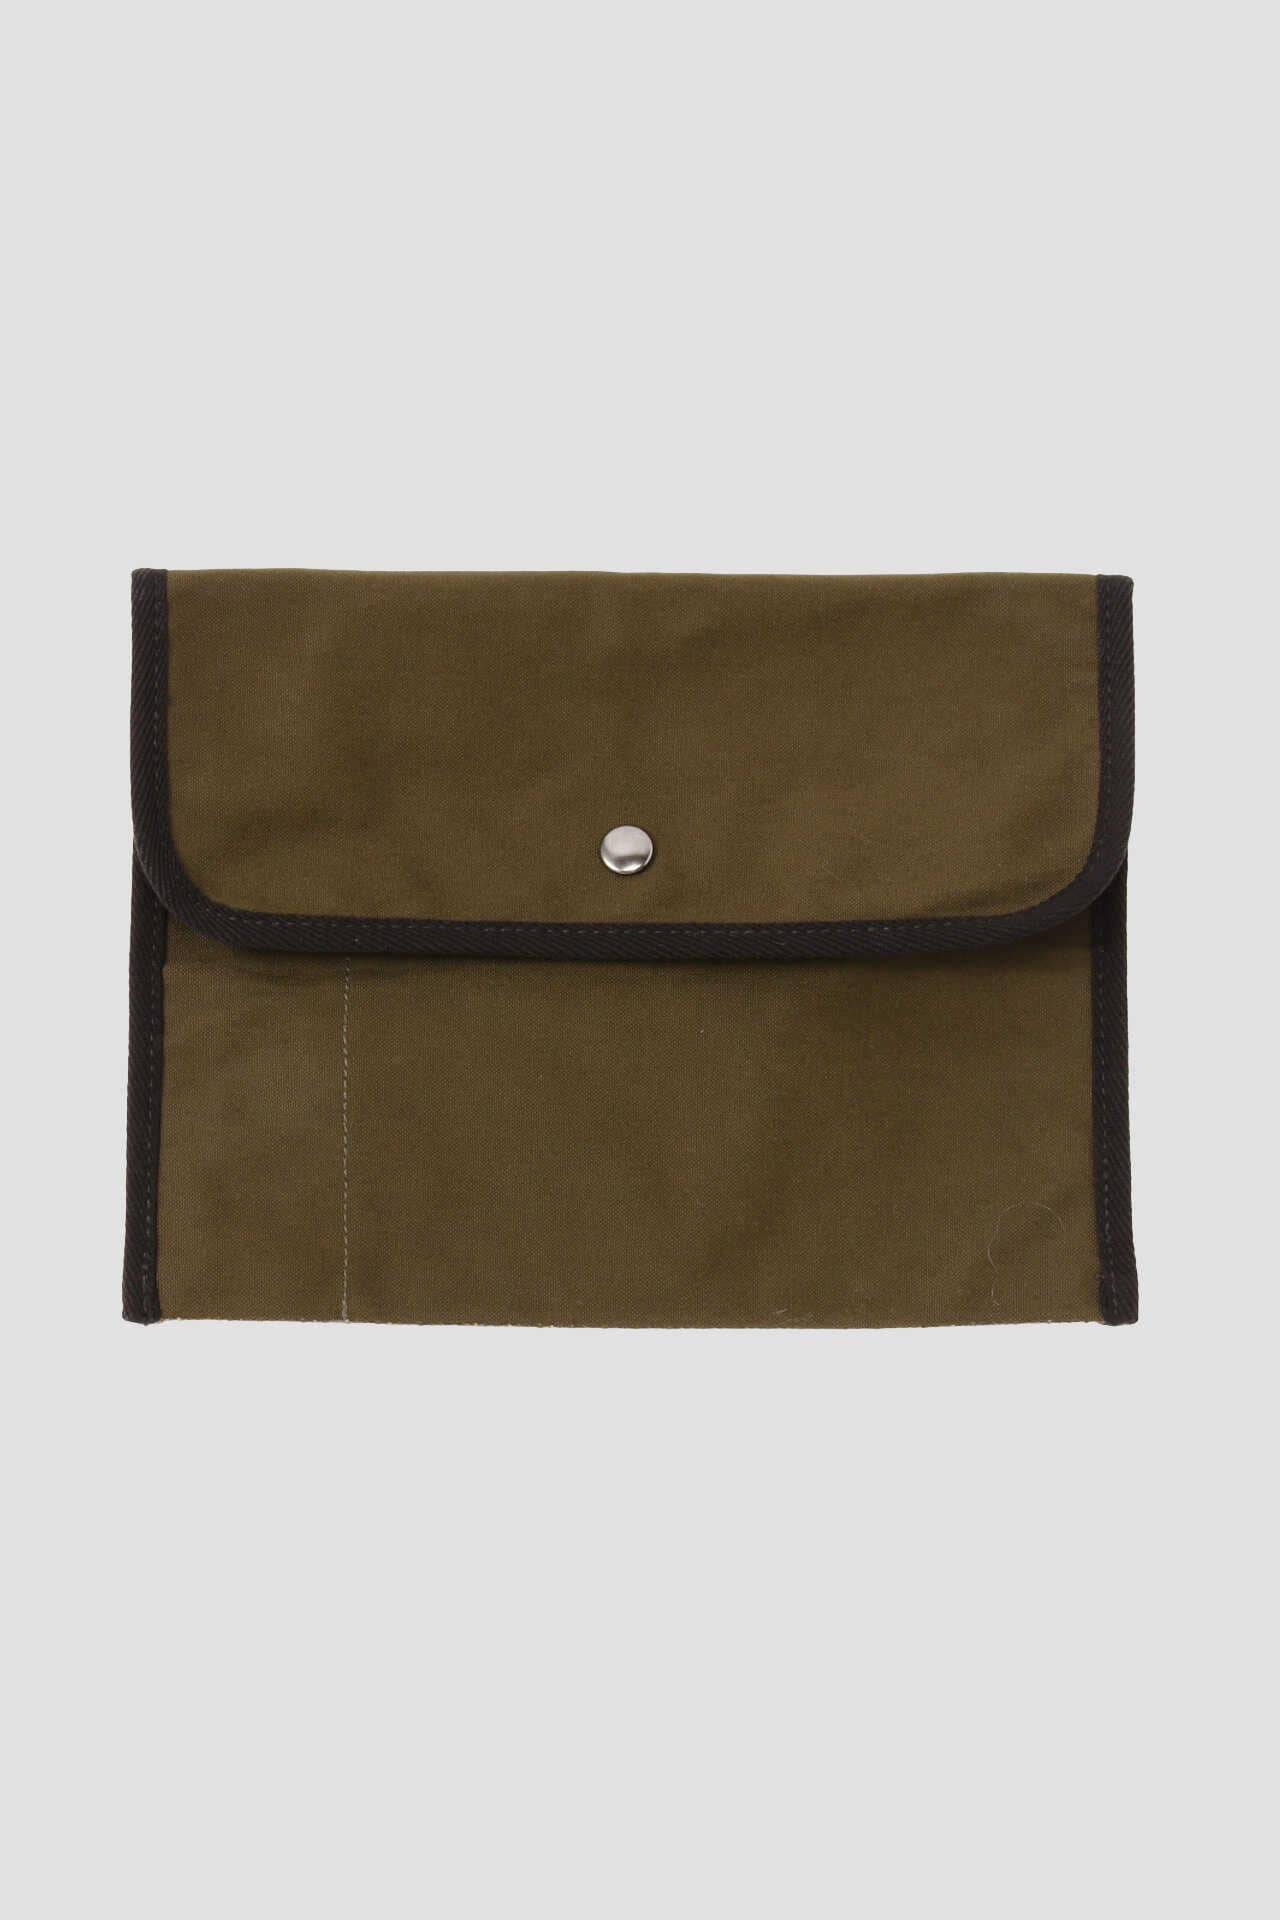 BASIC COTTON CANVAS(MHL SHOP限定)6